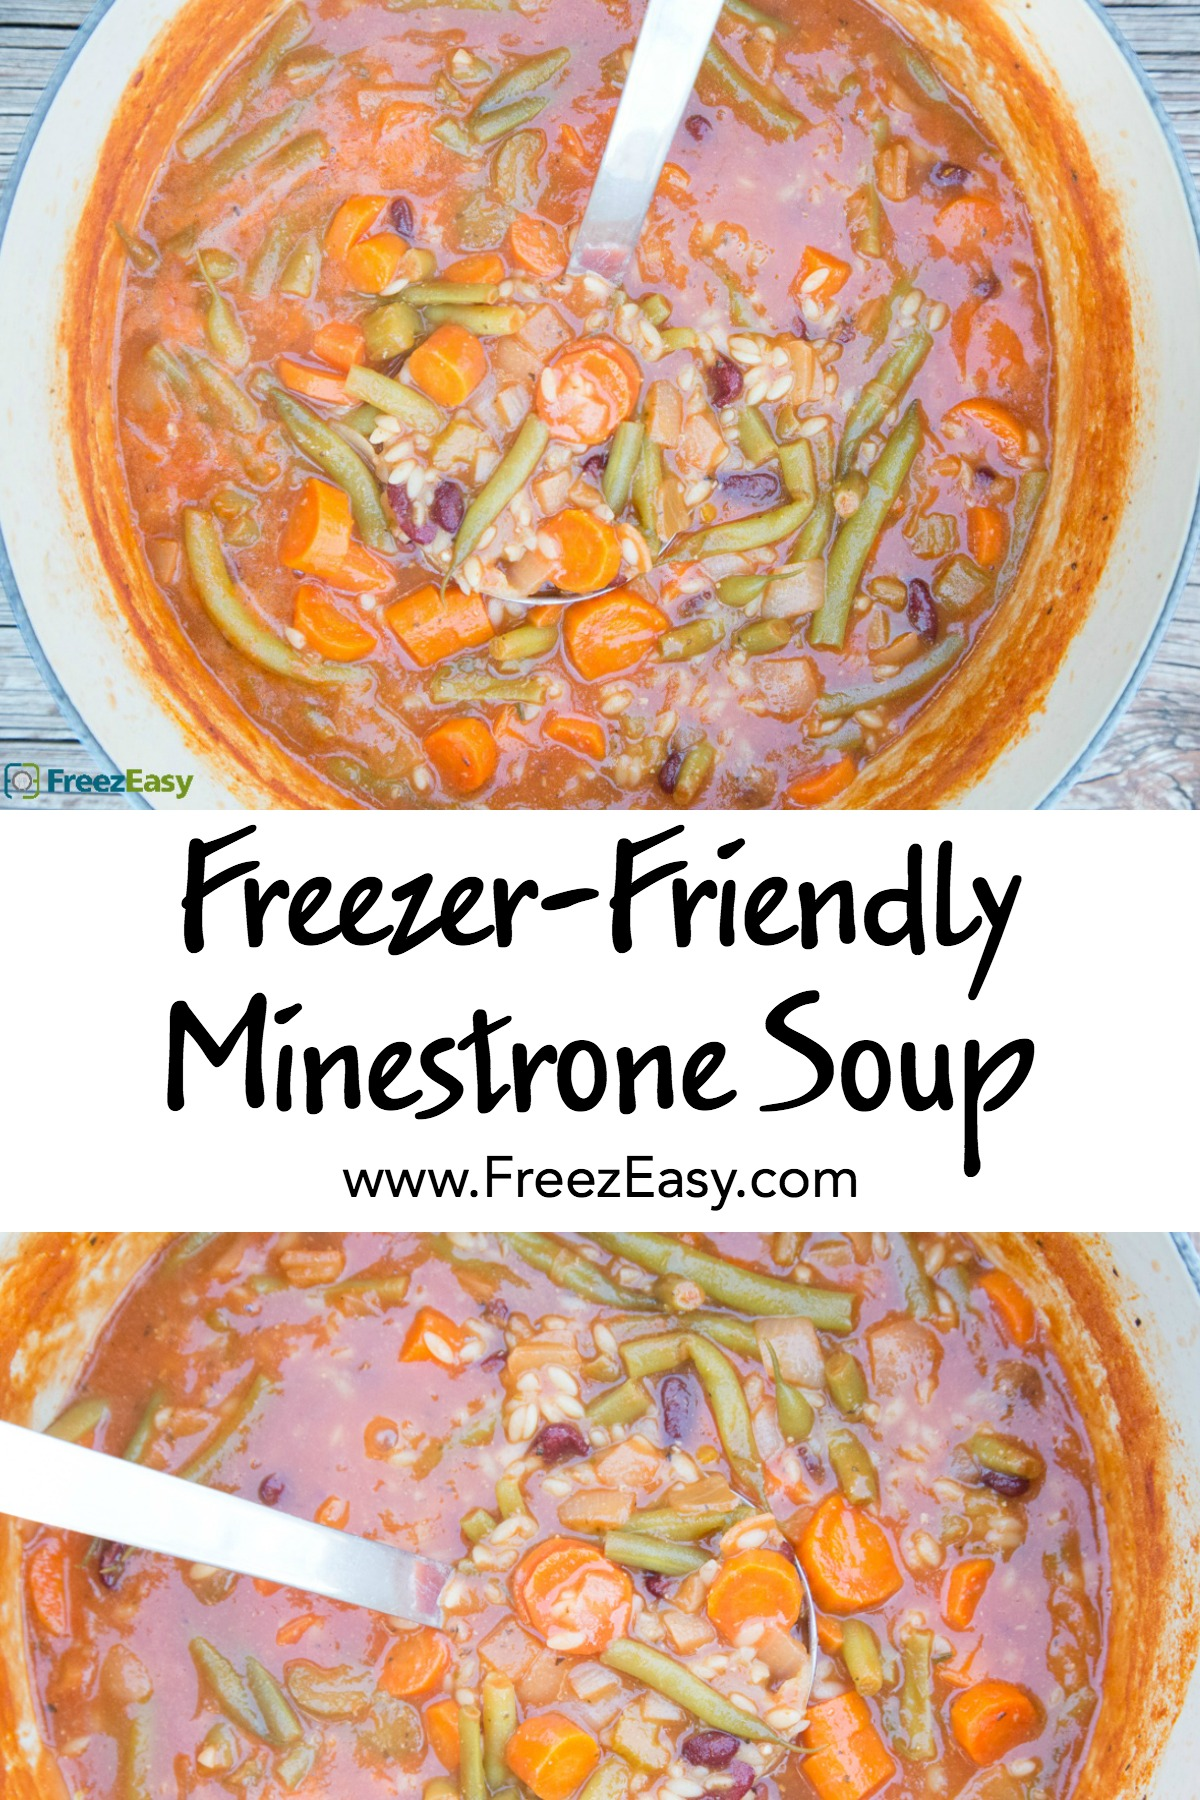 Freezer Friendly Minestrone Soup - FreezEasy.com